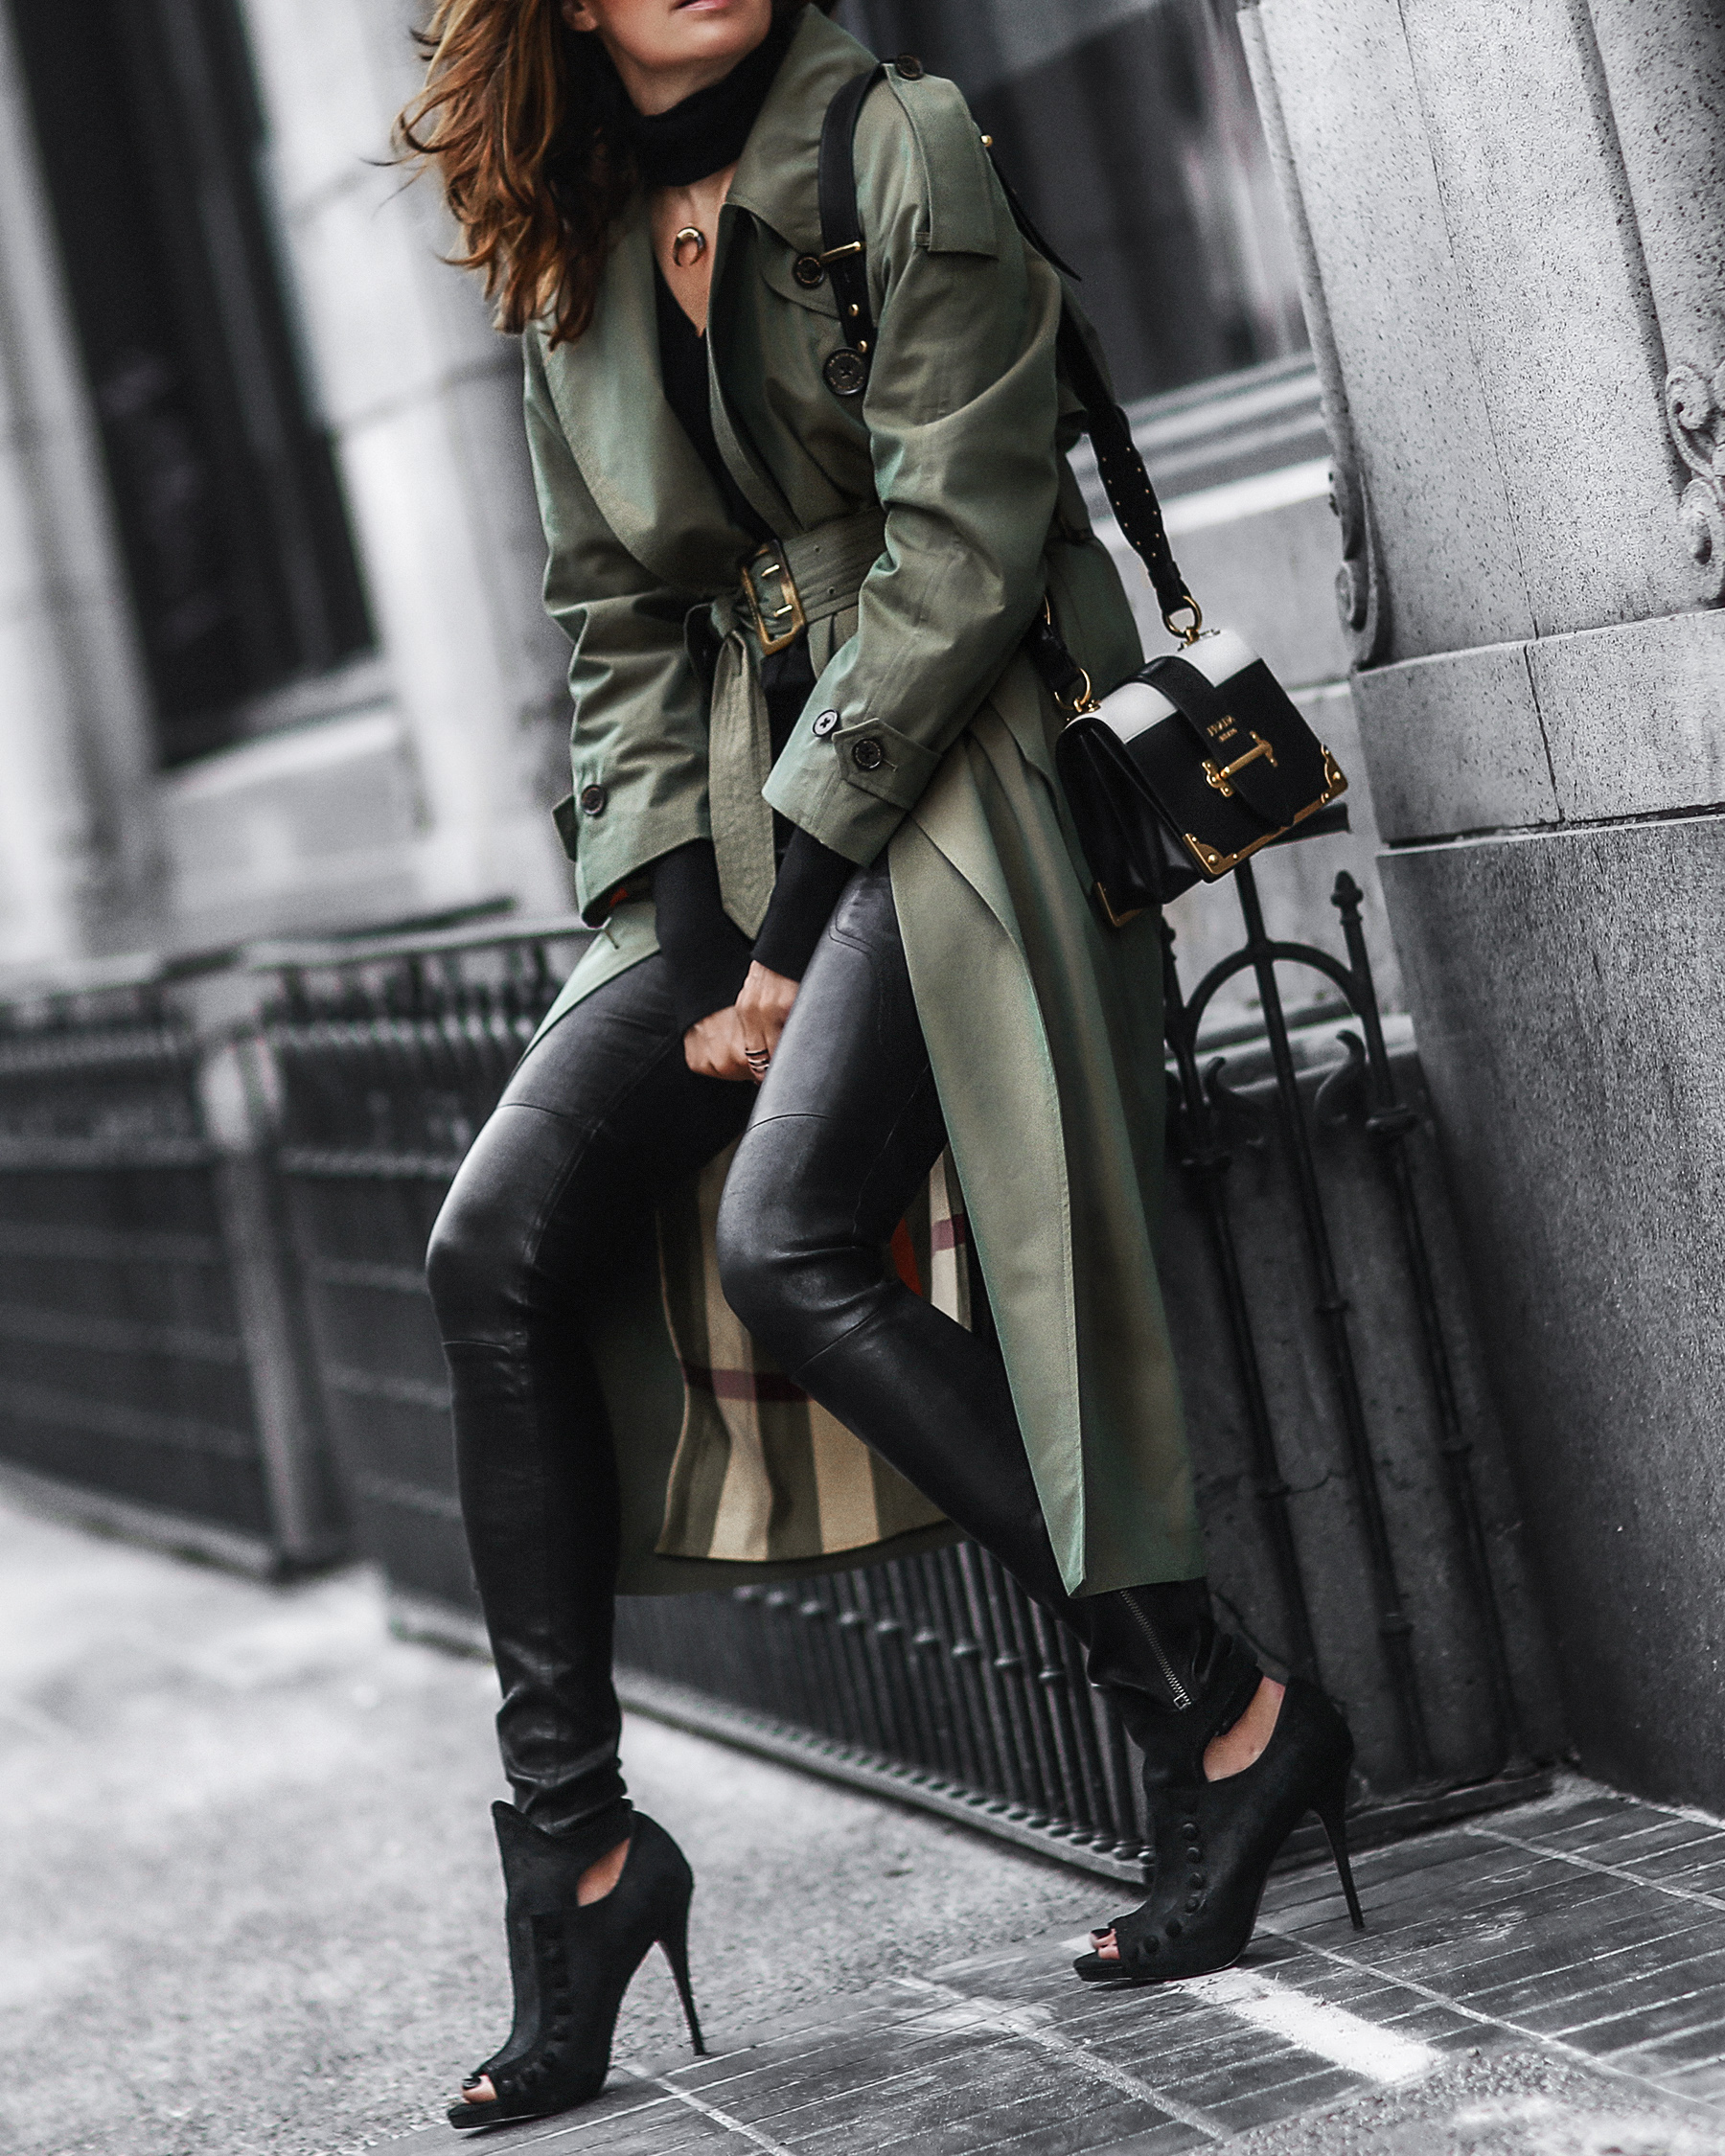 burberry trench coat, leather pants, prada bag, black booties